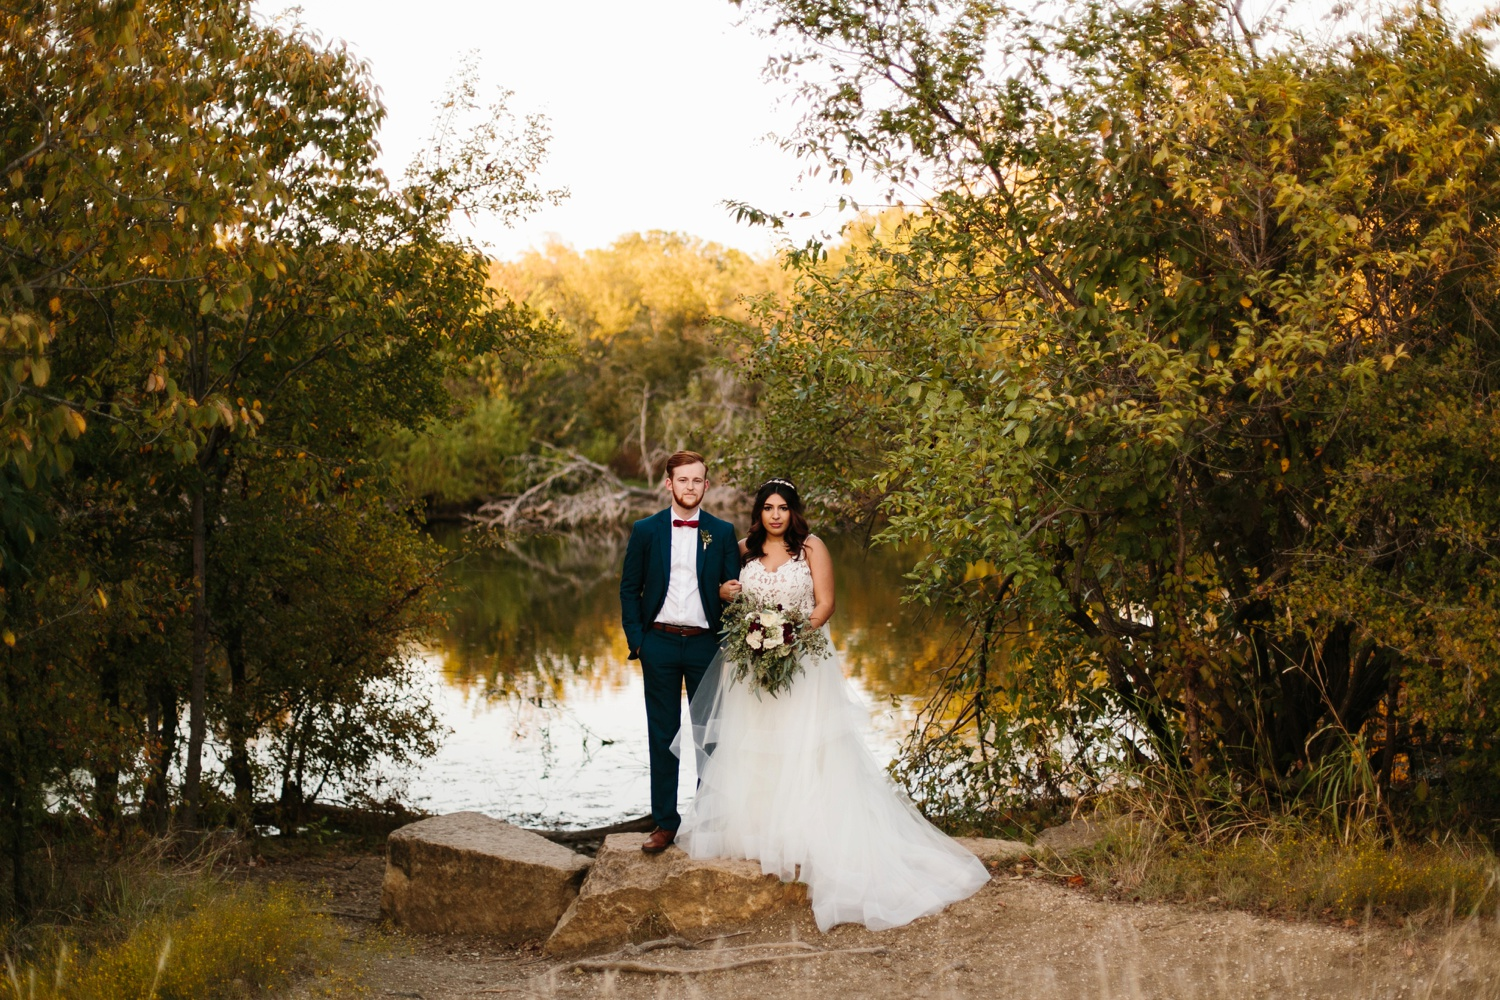 Grant + Lysette | a vibrant, deep burgundy and navy, and mixed metals wedding at Hidden Pines Chapel by North Texas Wedding Photographer Rachel Meagan Photography 243